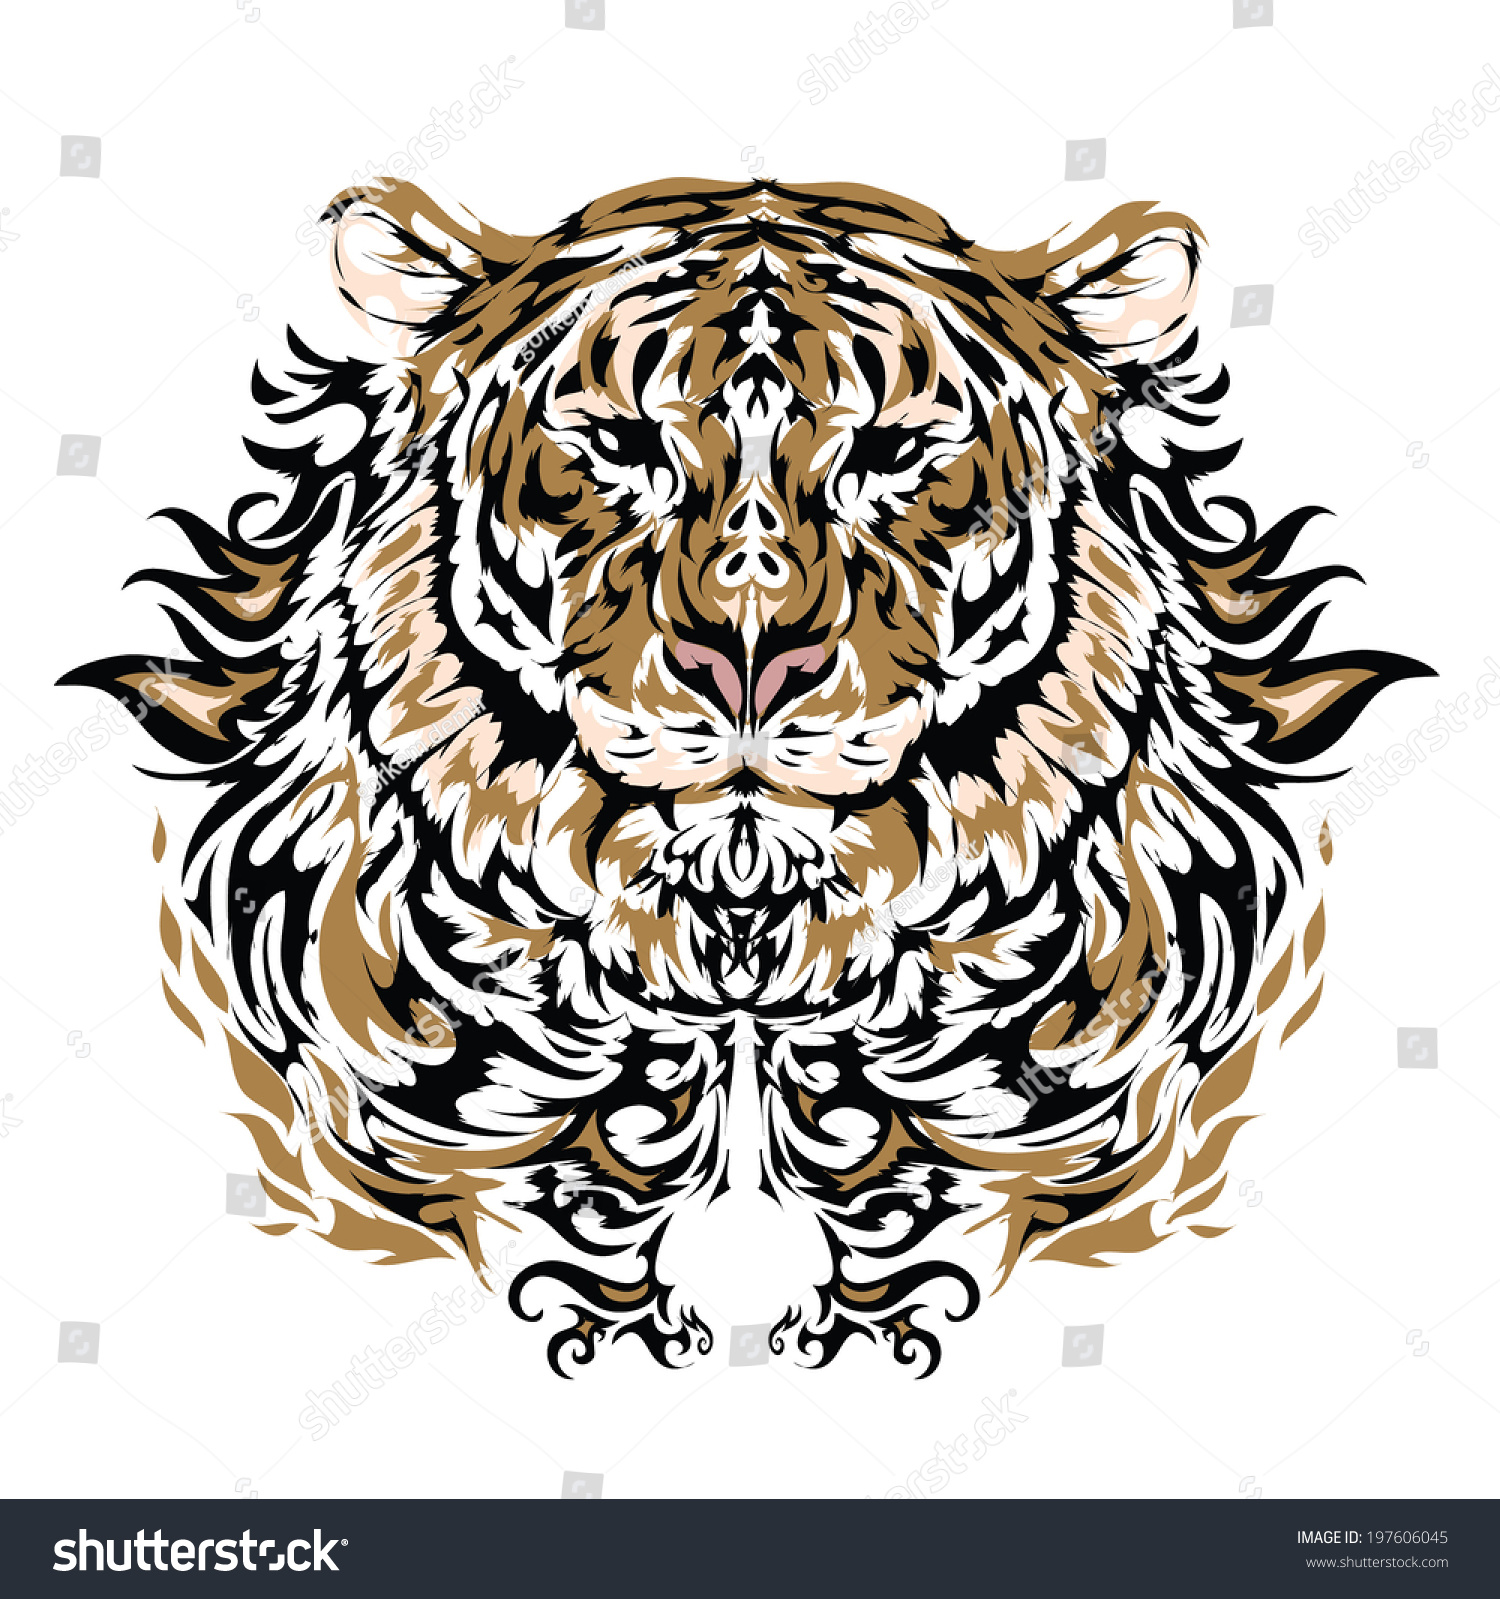 afe33be9b Tattoo Vector Sketch Tigers Face Stock Vector (Royalty Free ...